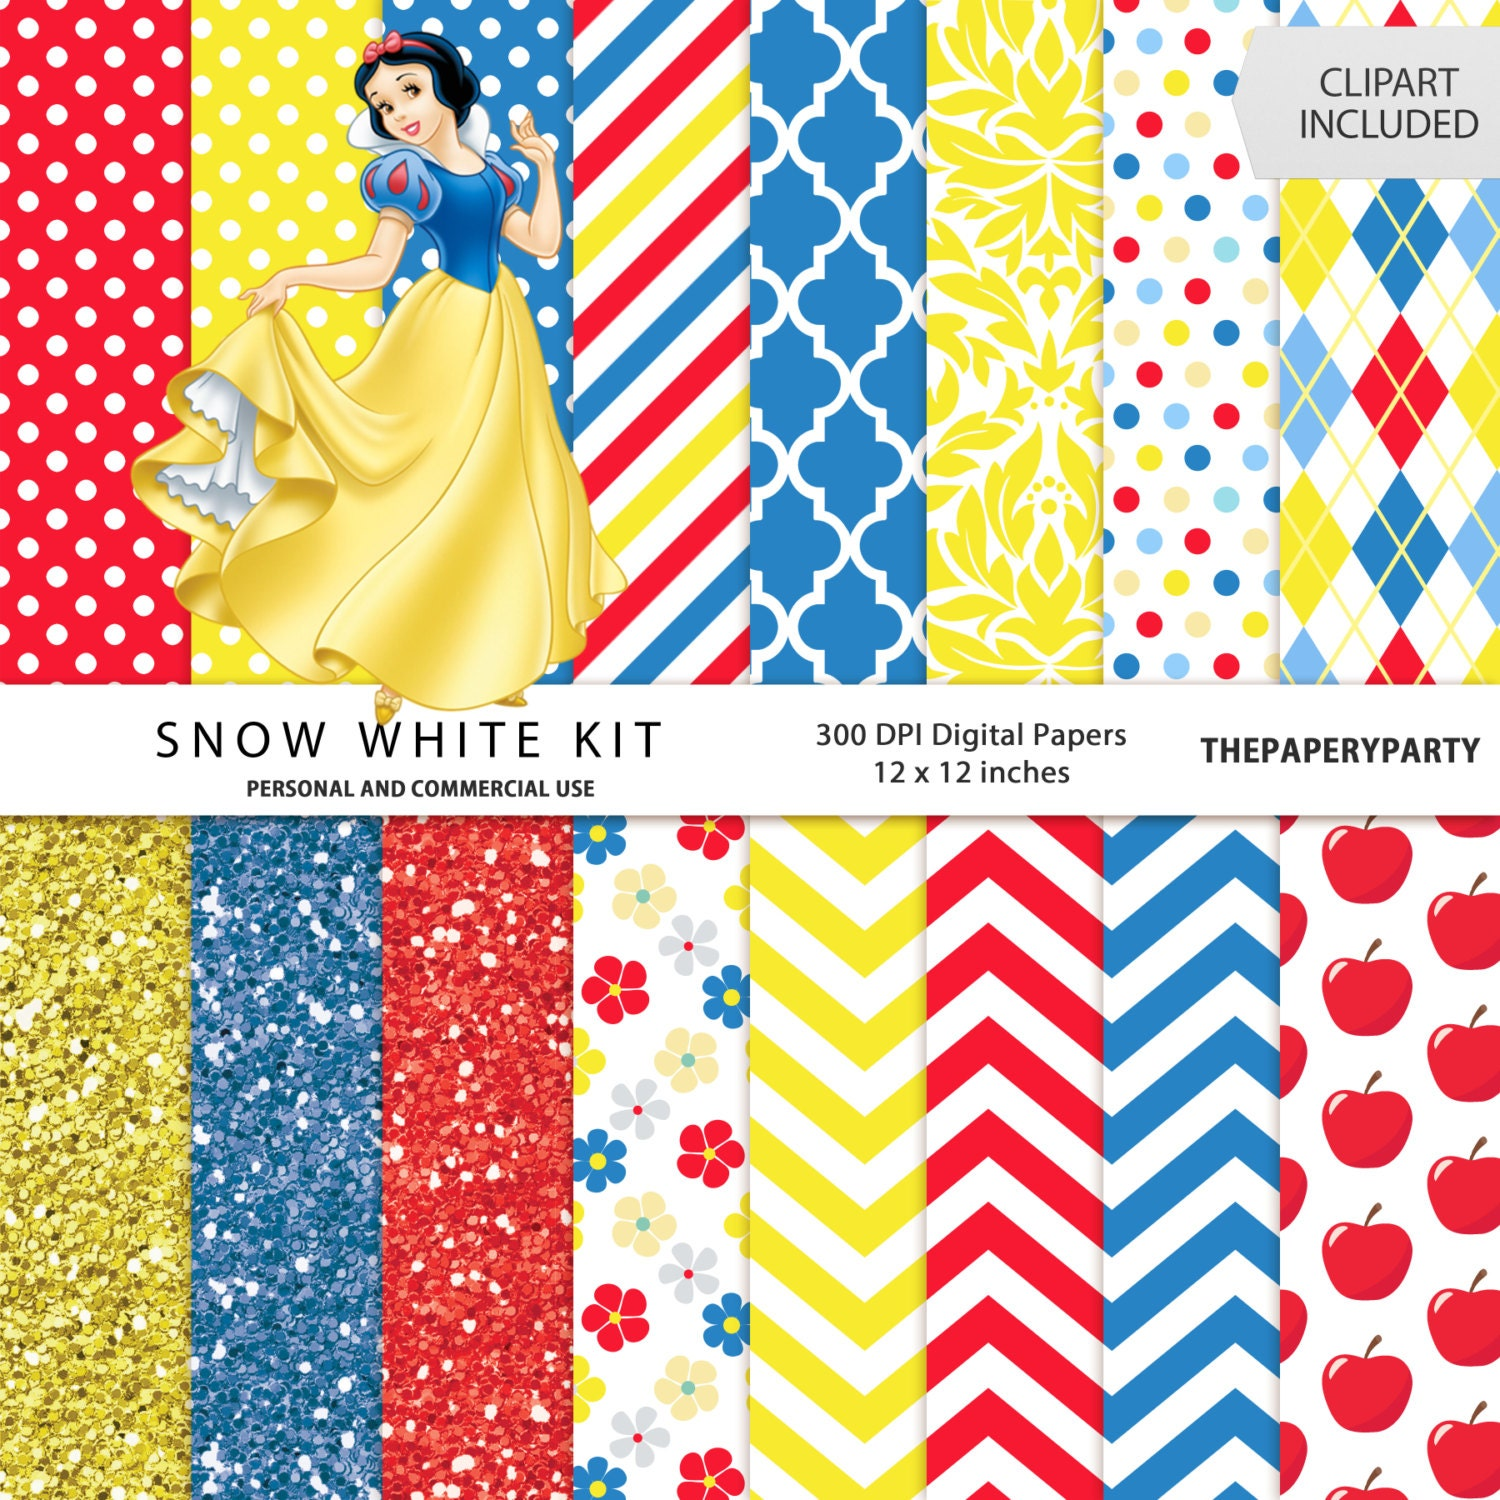 Snow White Digital Papers Scrapbook Kit 12 x 12 inches yellow